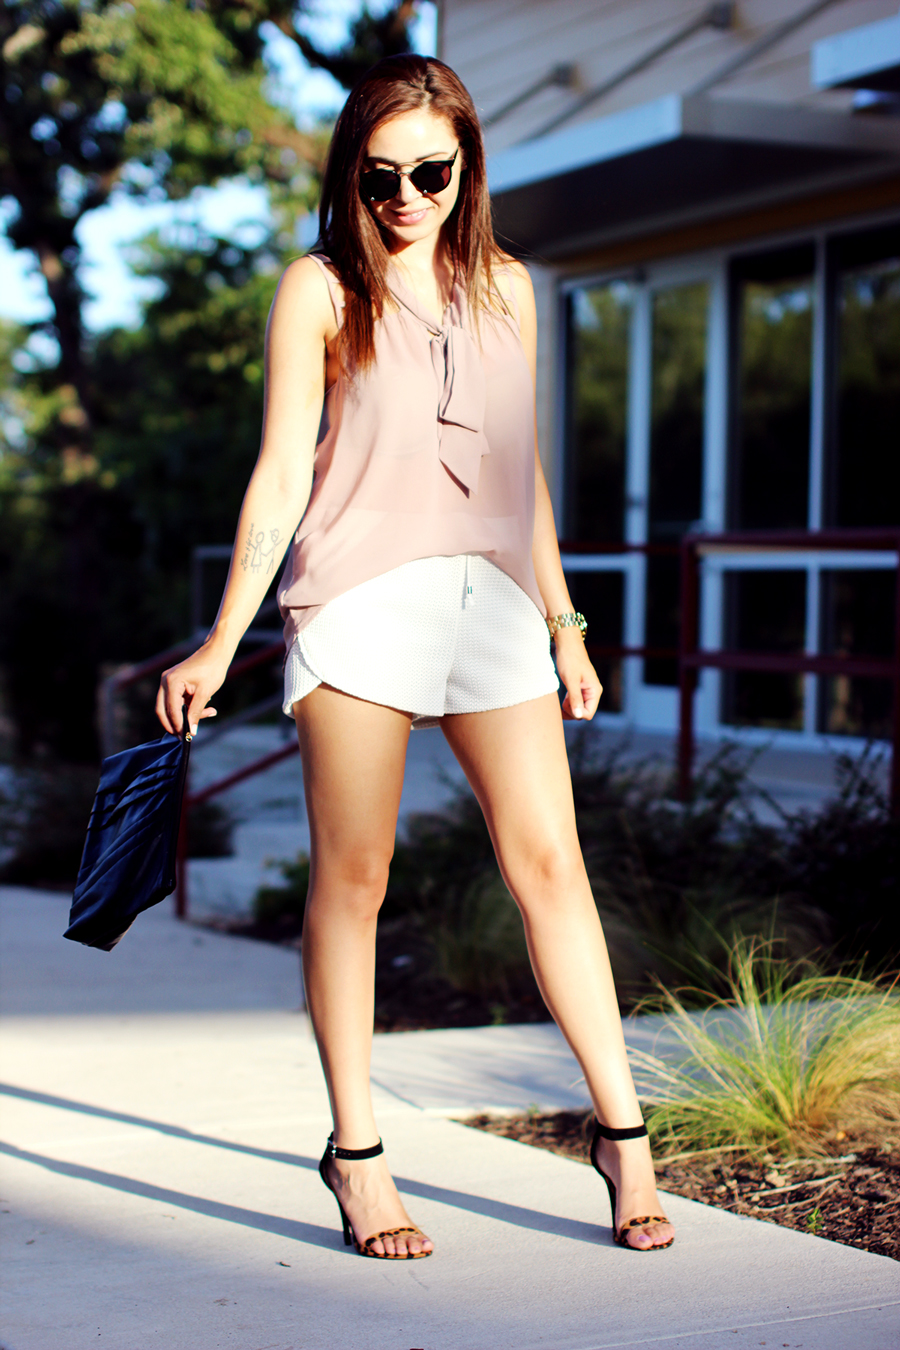 WHITE-SHORTS-ATHLETIC-NEUTRALS-GLAM-STYLIST-CLASSIC-SUMMER-STYLE-FIXIN-TO-THRILL-AUSTIN-FASHION-BLOG-TEXAS-5